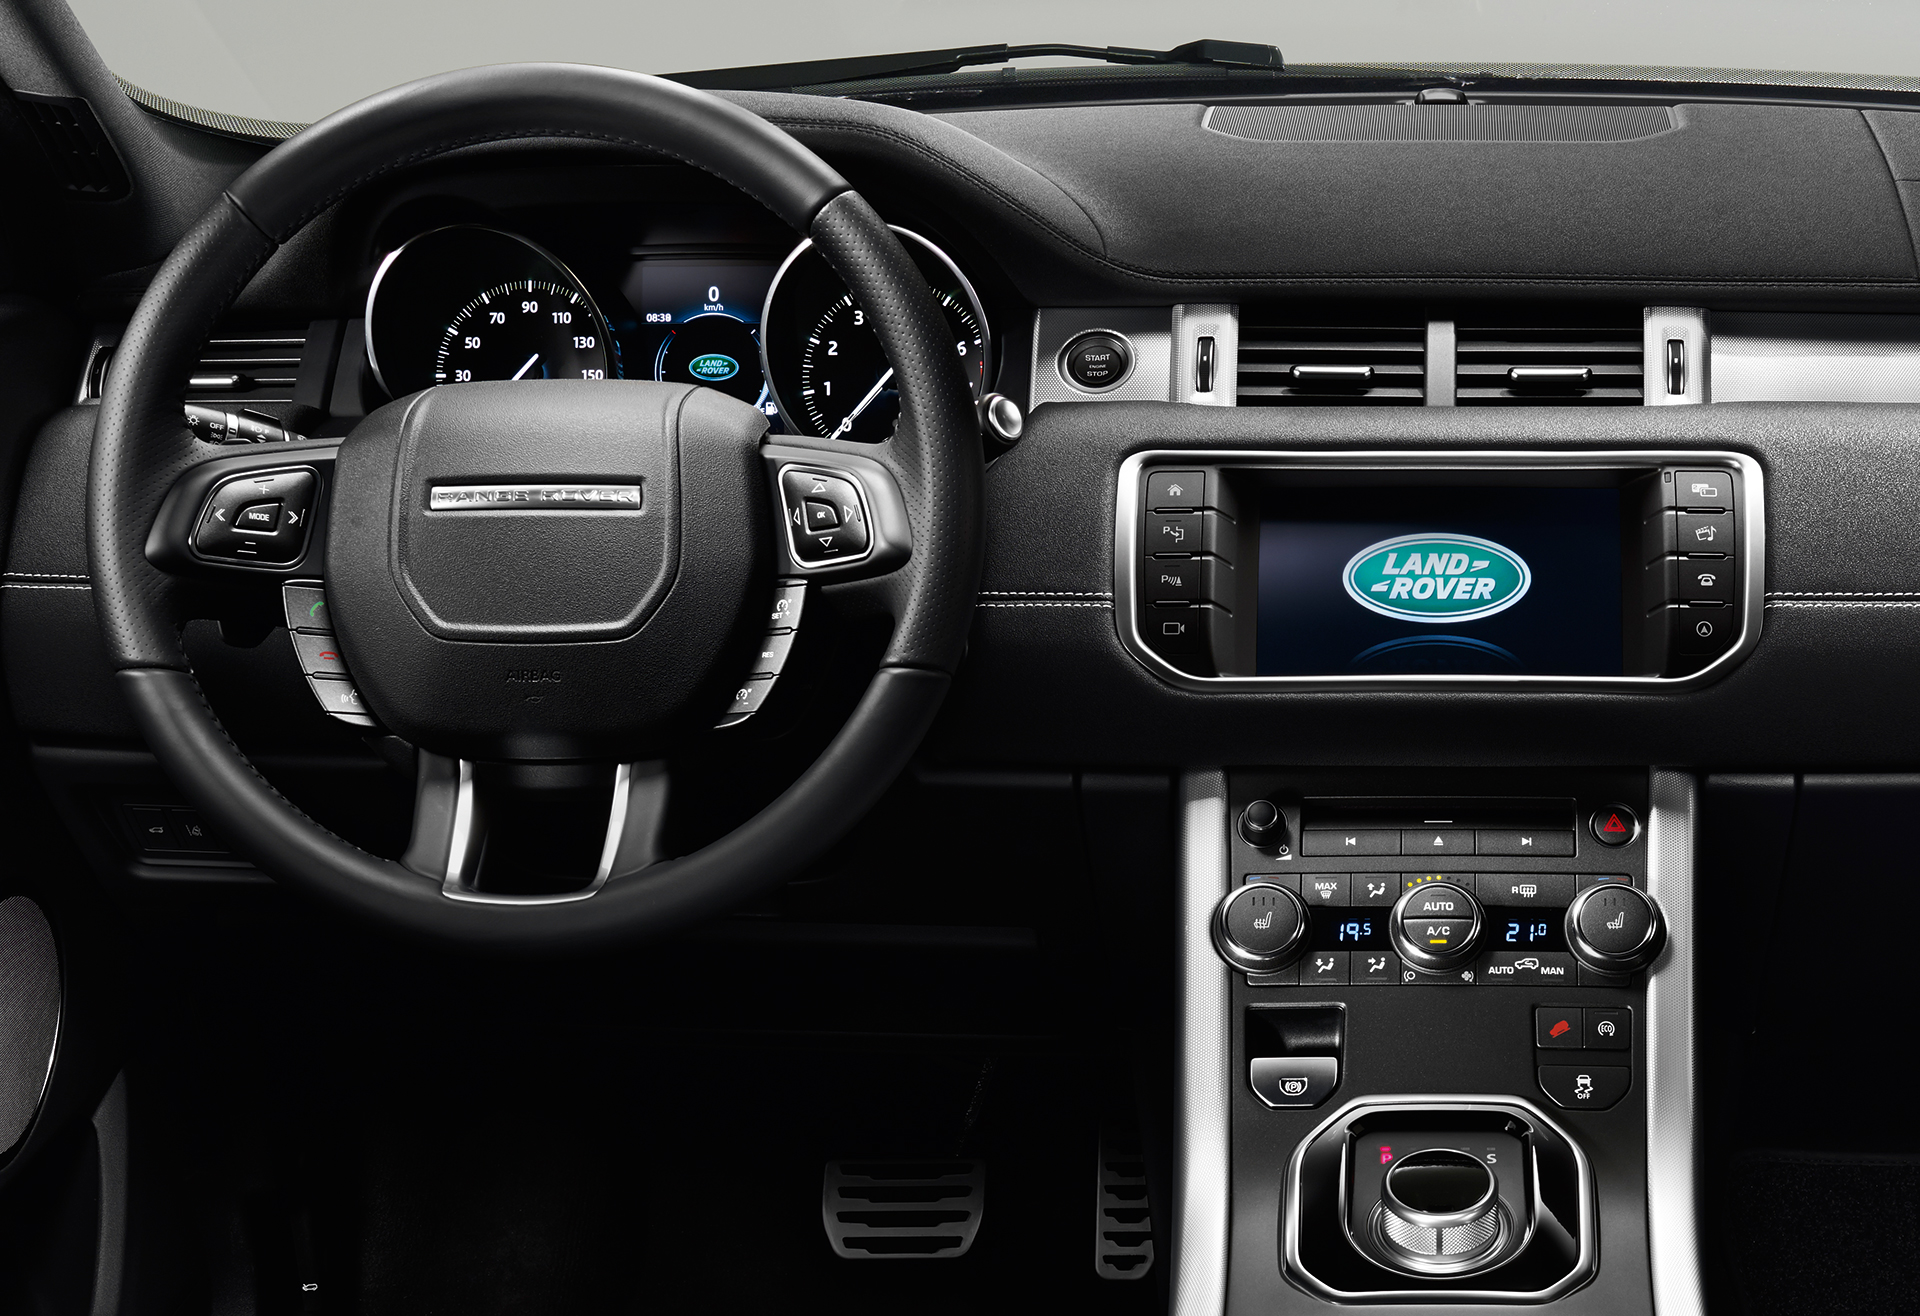 Land rover range rover evoque convertible sans quivoque for Interieur range rover evoque